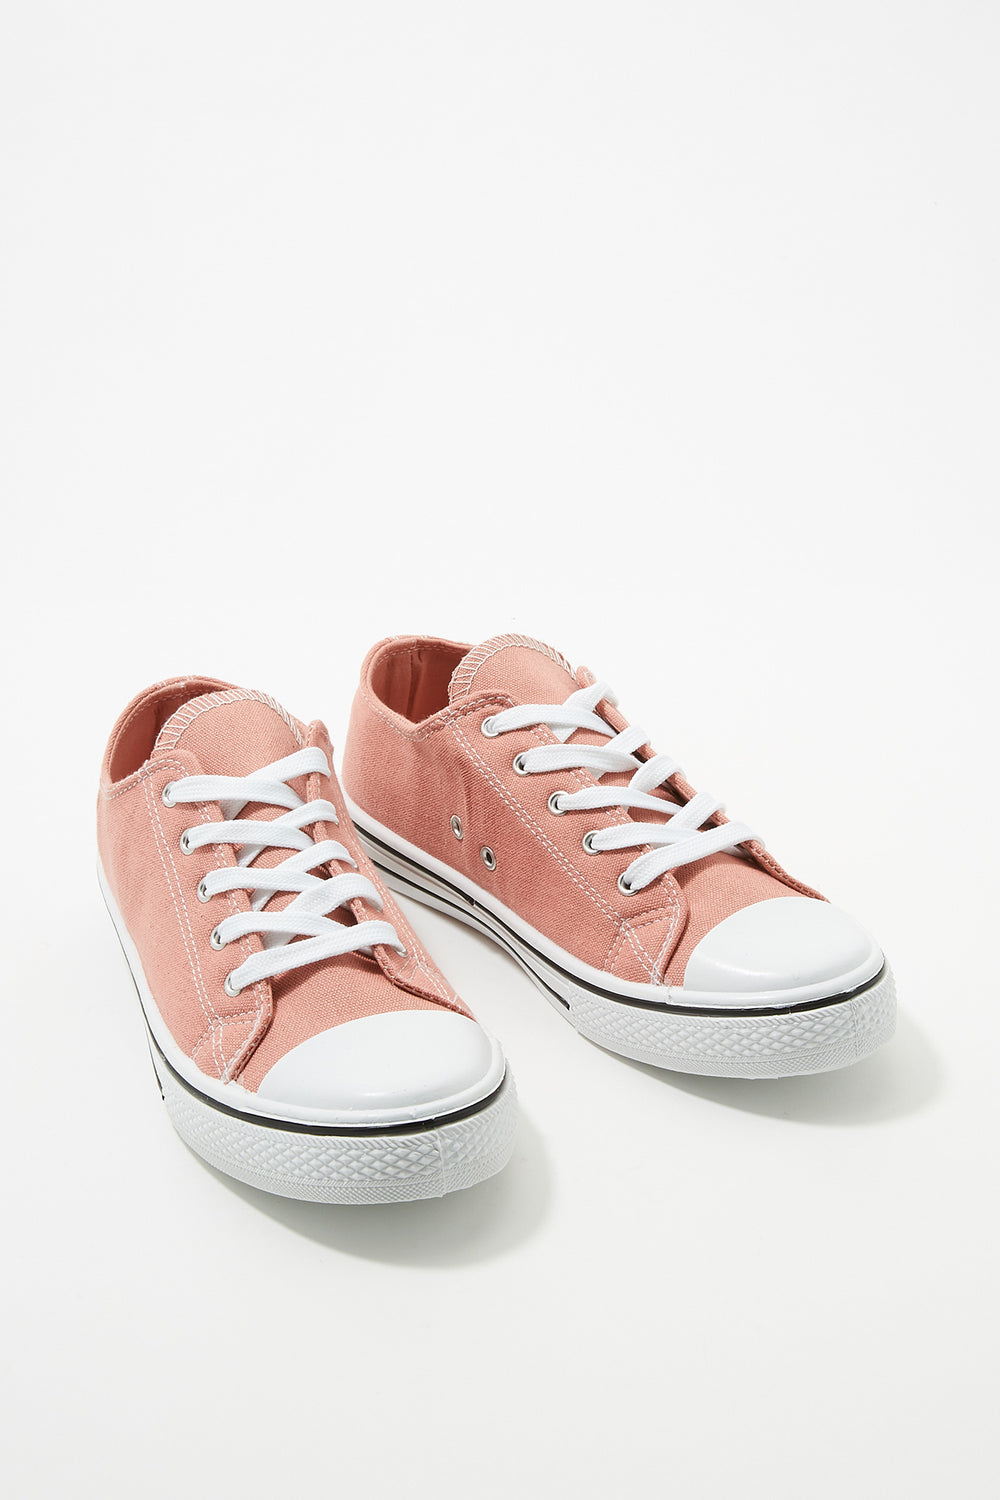 Women Shoes Classic Canvas Lace-Up Sneaker Light Pink